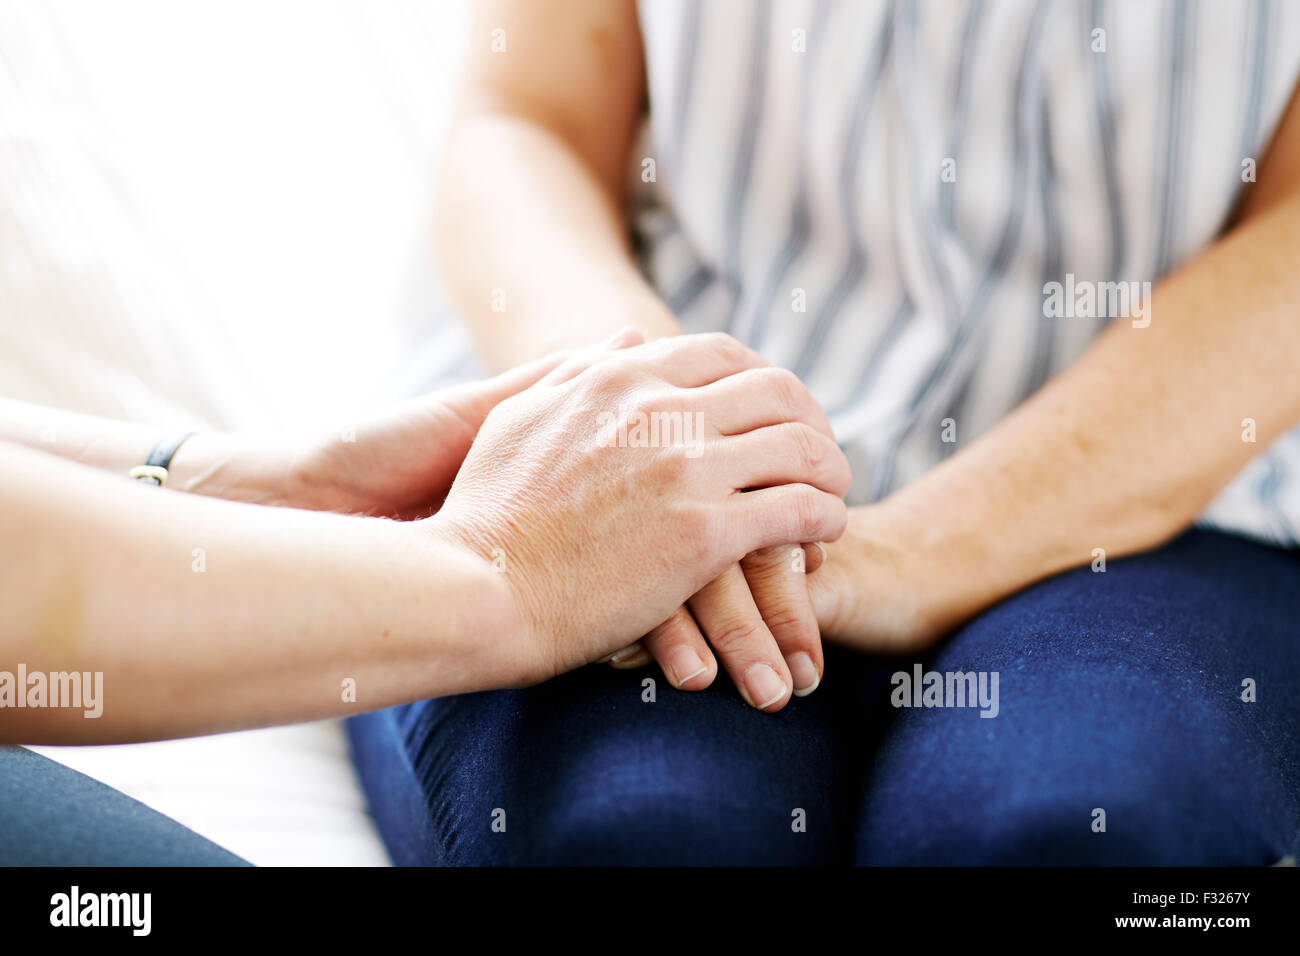 Woman consoling another - Stock Image